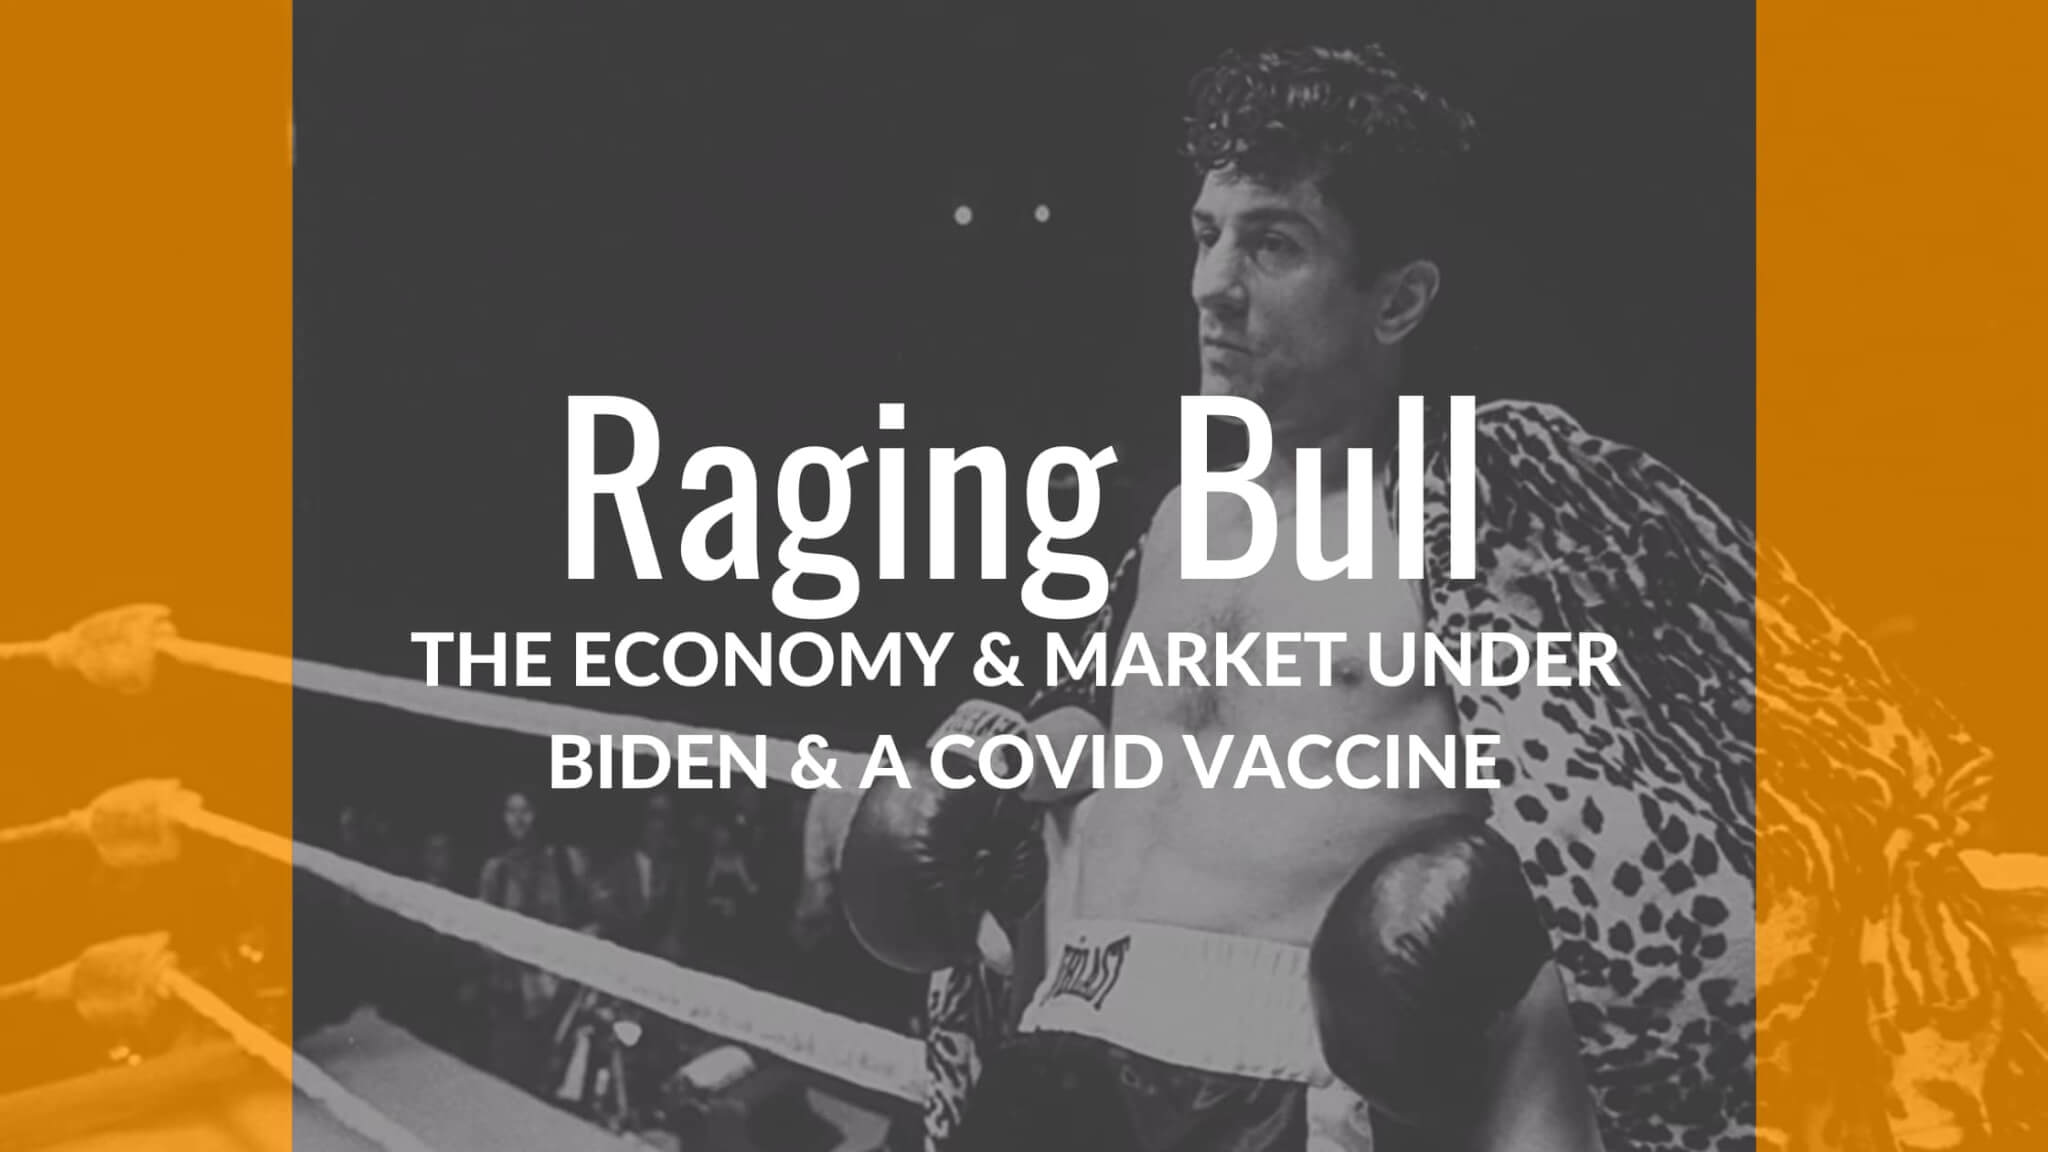 Raging Bull: The Economy & Market Under Joe Biden & A Covid Vaccine